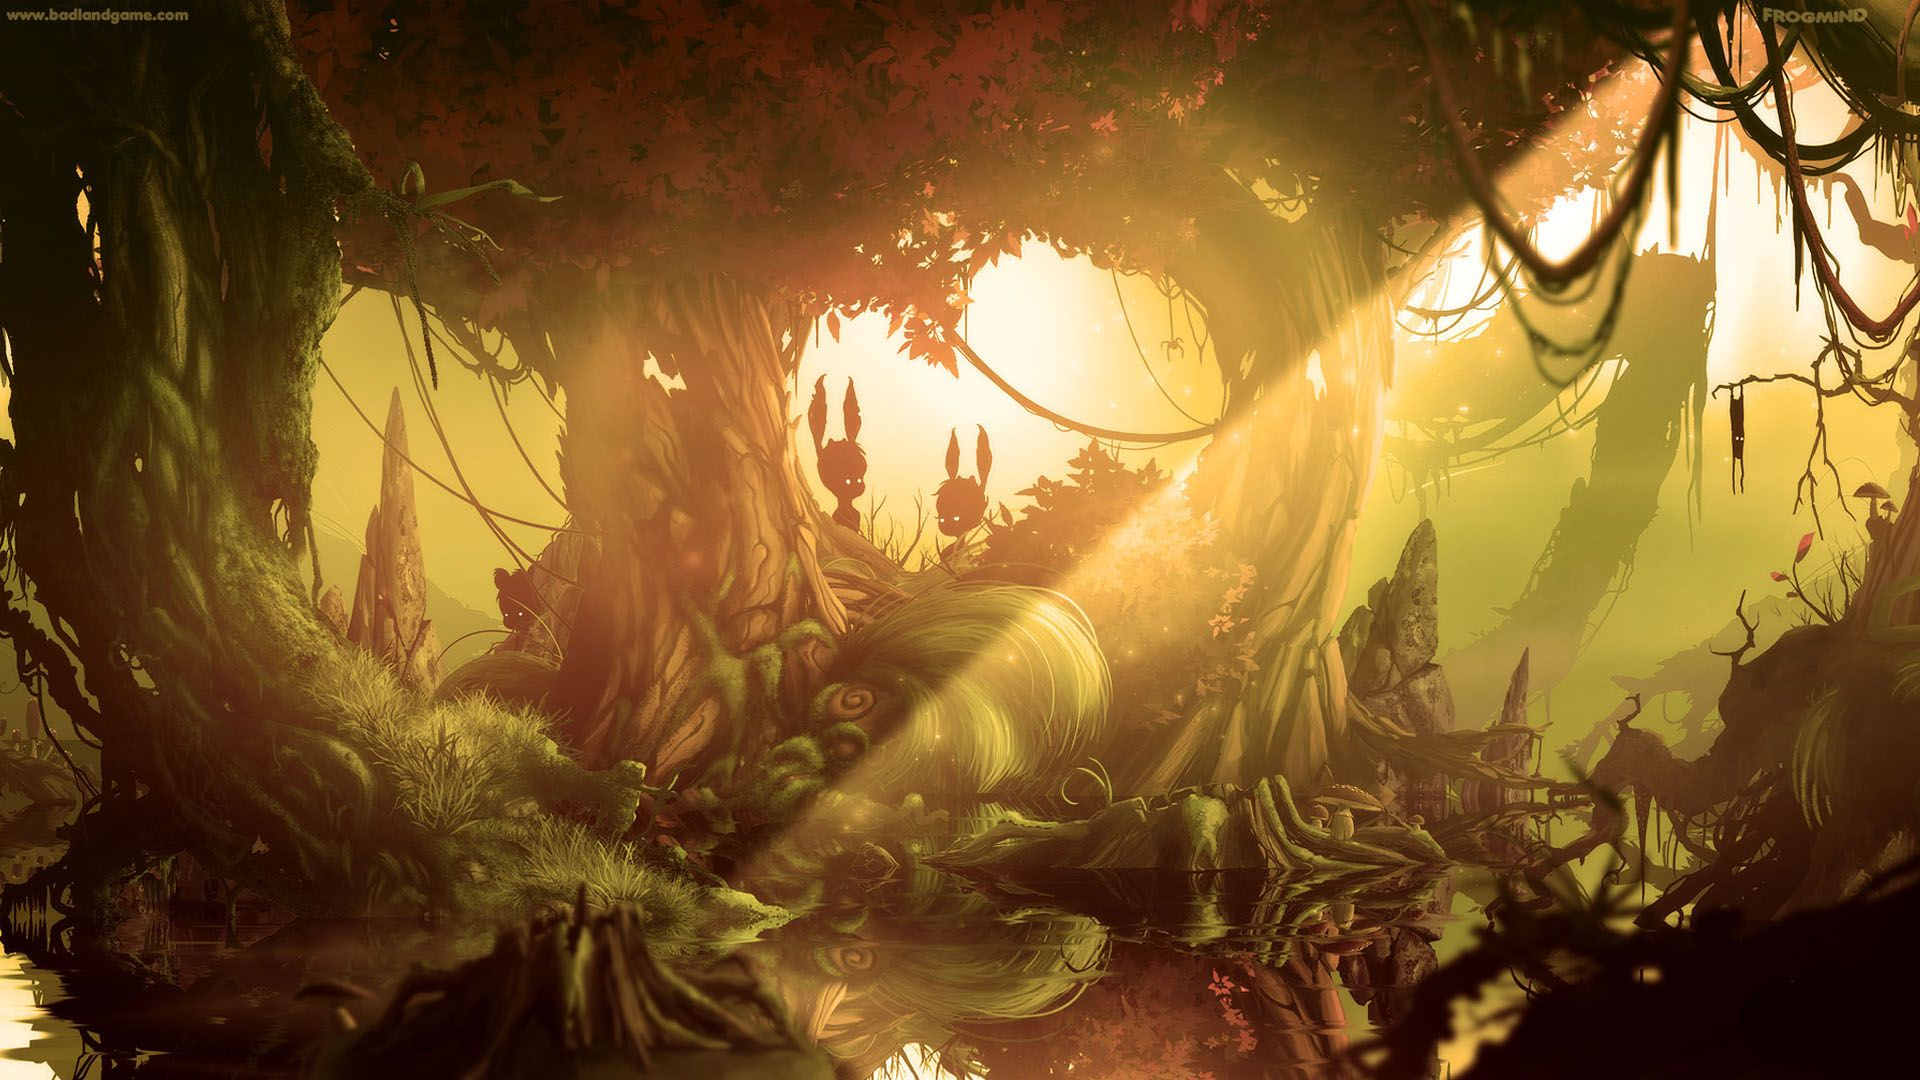 BADLAND Atmospheric SideScrolling Action Adventure Game